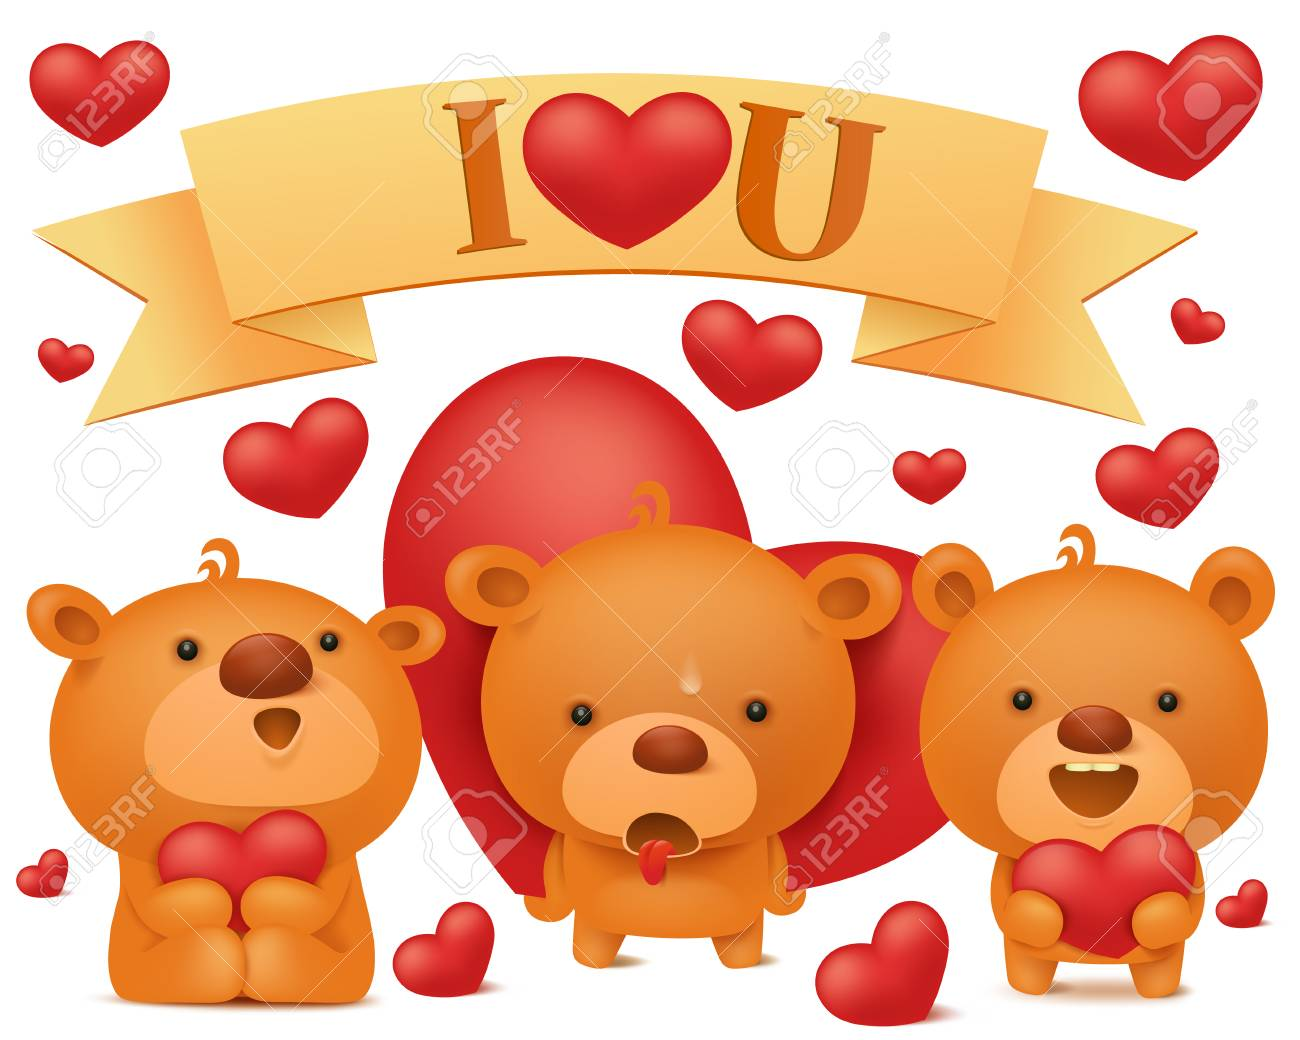 set of teddy bear emoji characters with red hearts valentines